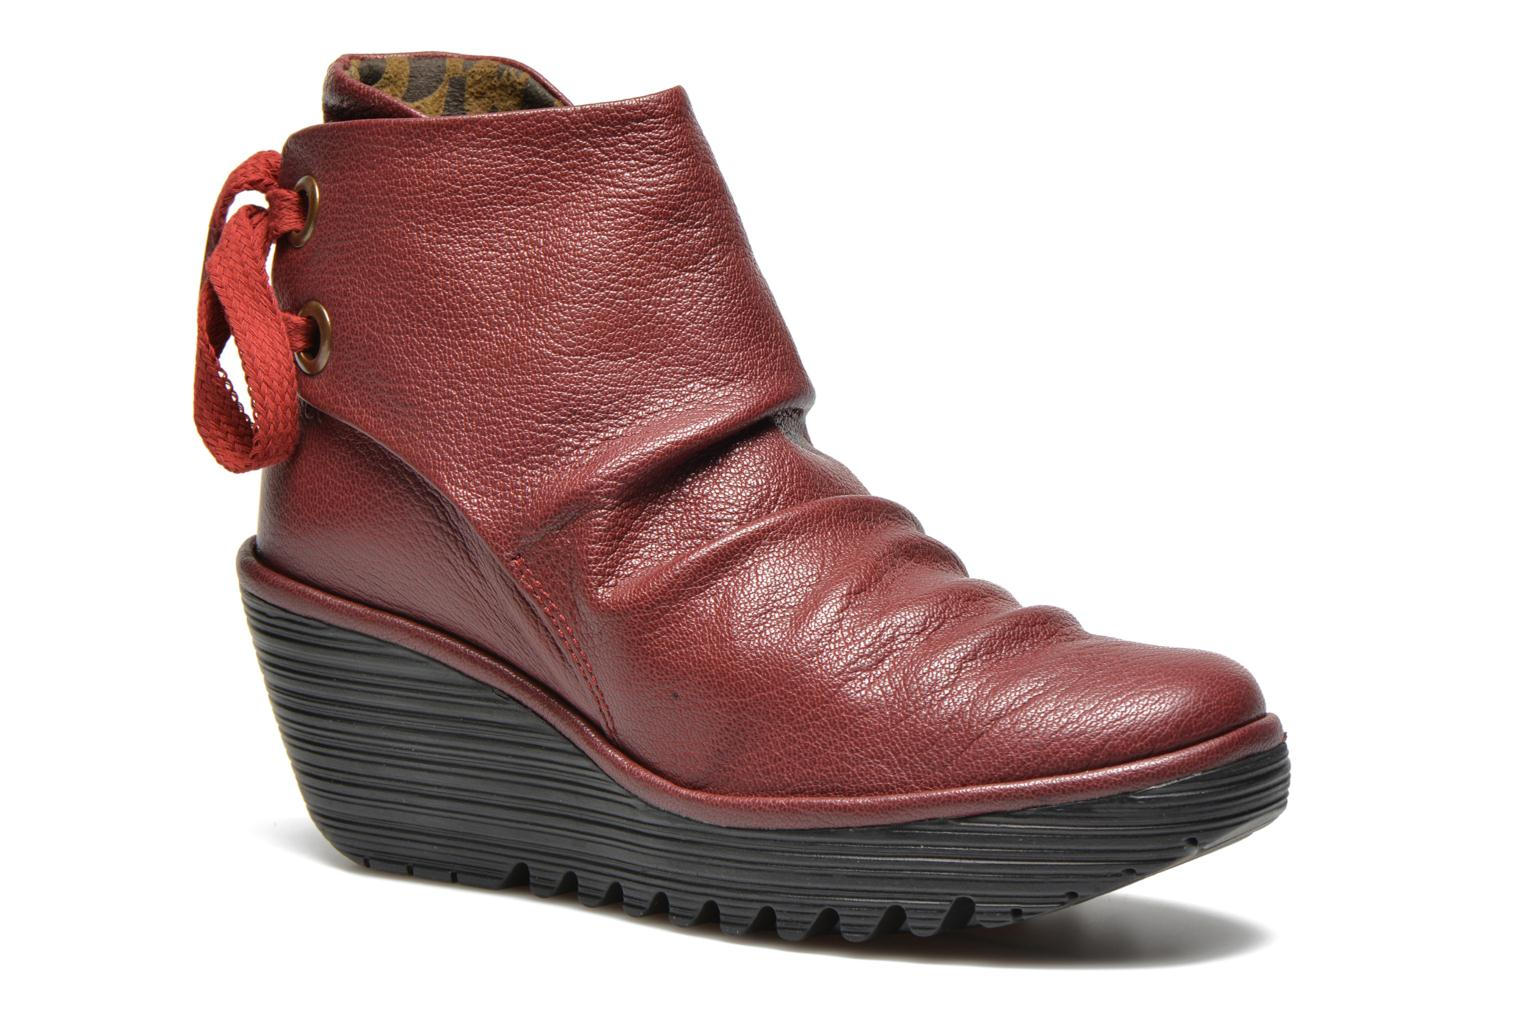 Marques Chaussure femme Fly London femme Yama Mousse Cordoba Red